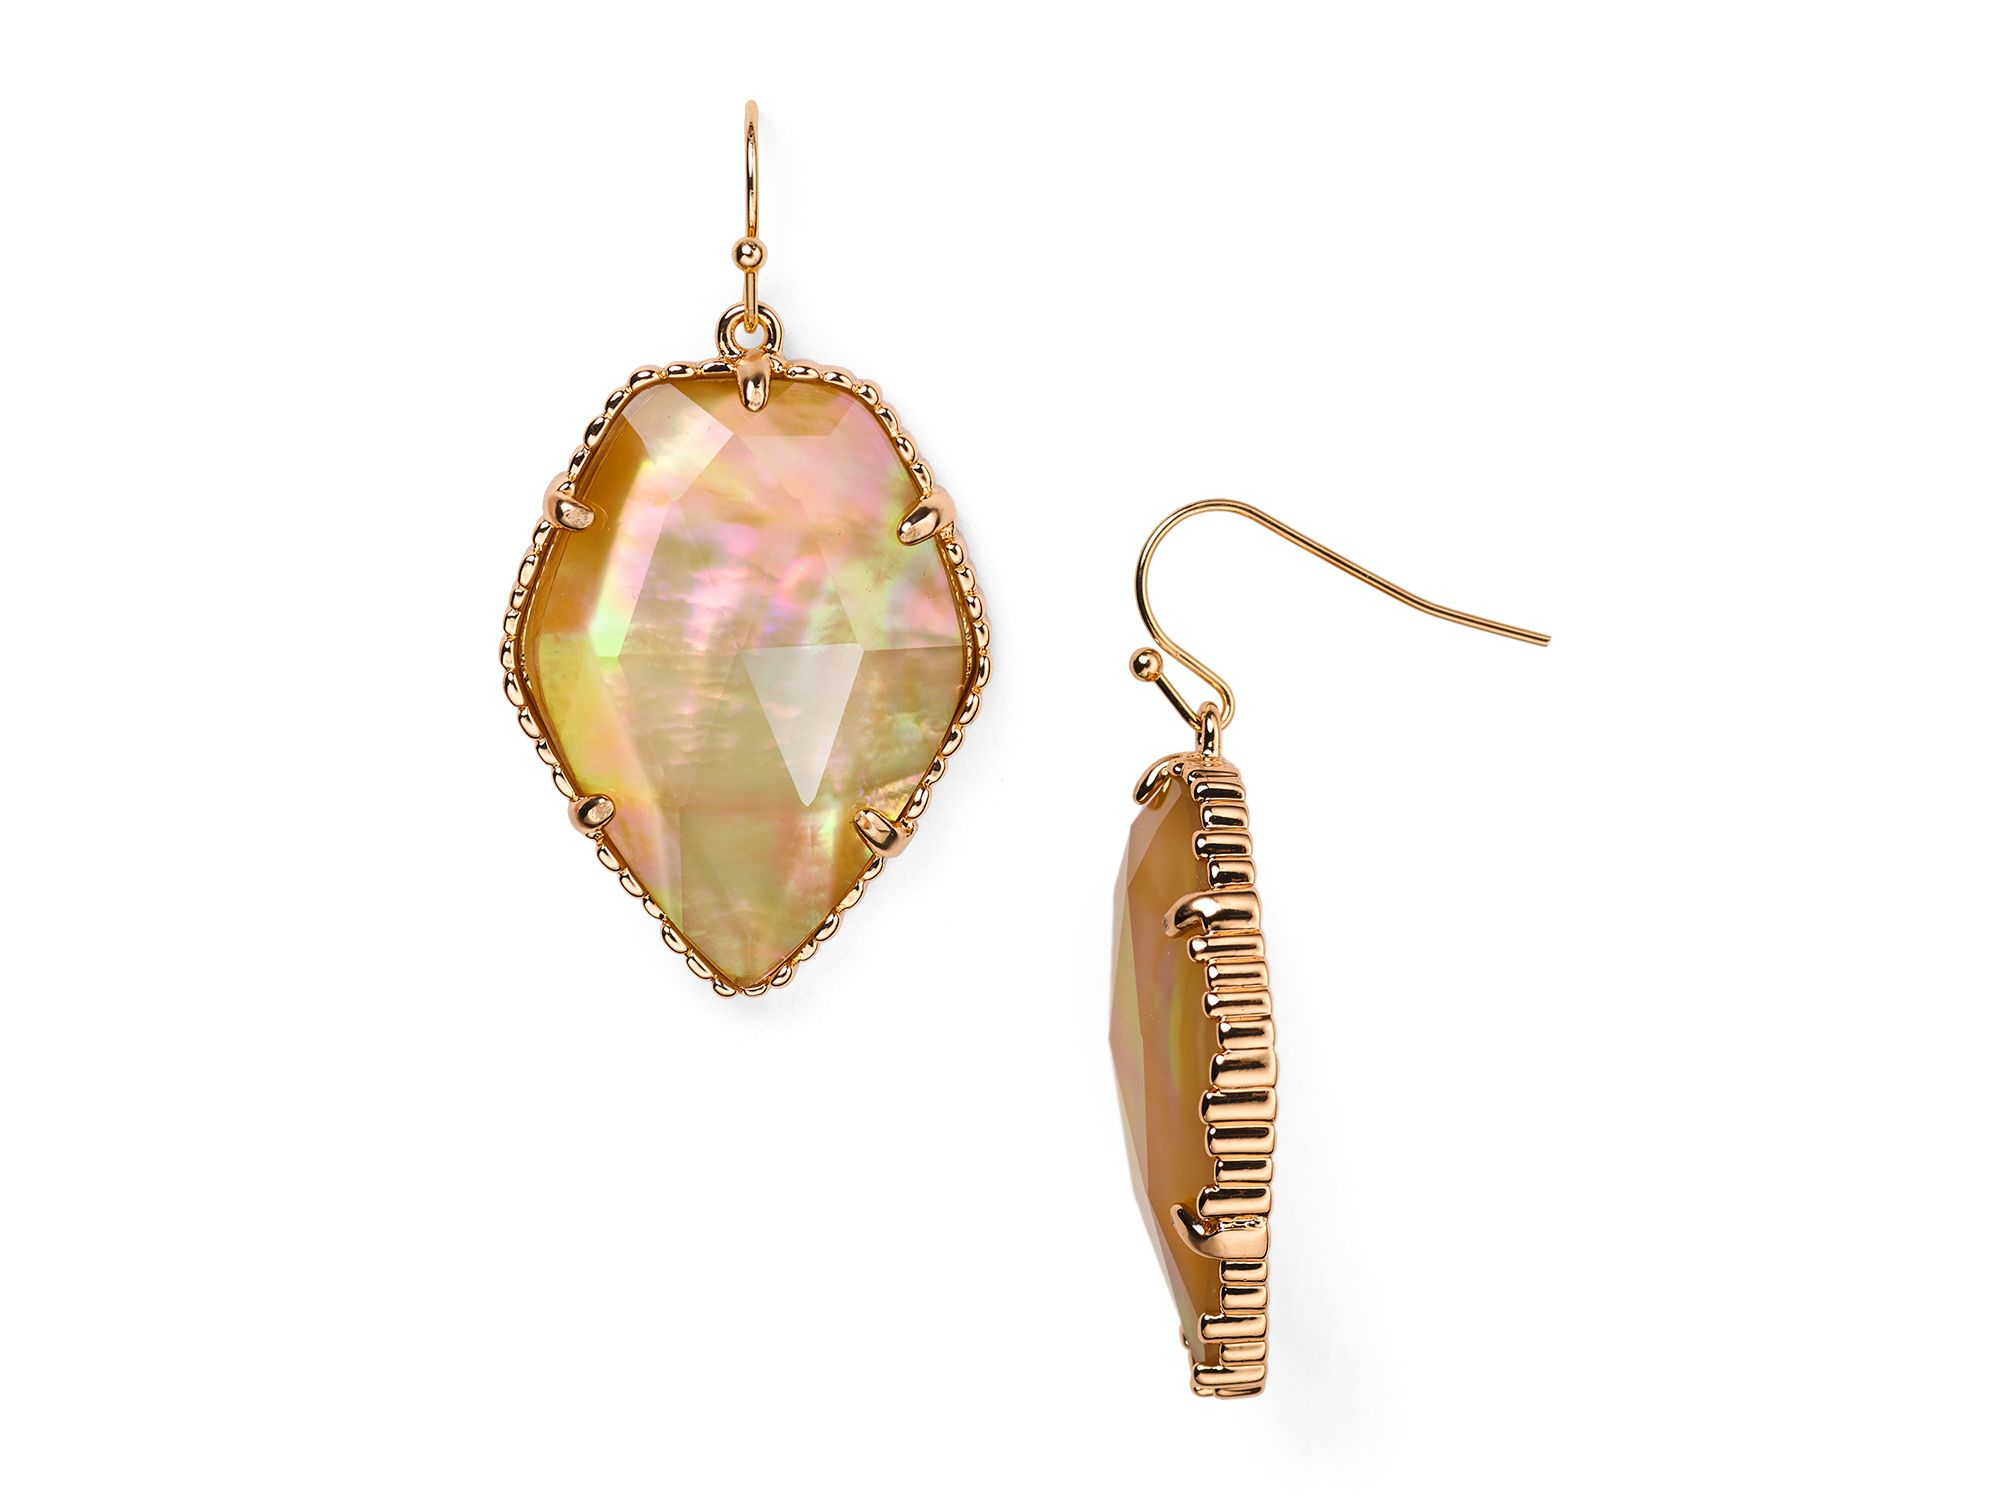 Kendra Scott Mother-of-pearl Corley Earrings In Pink